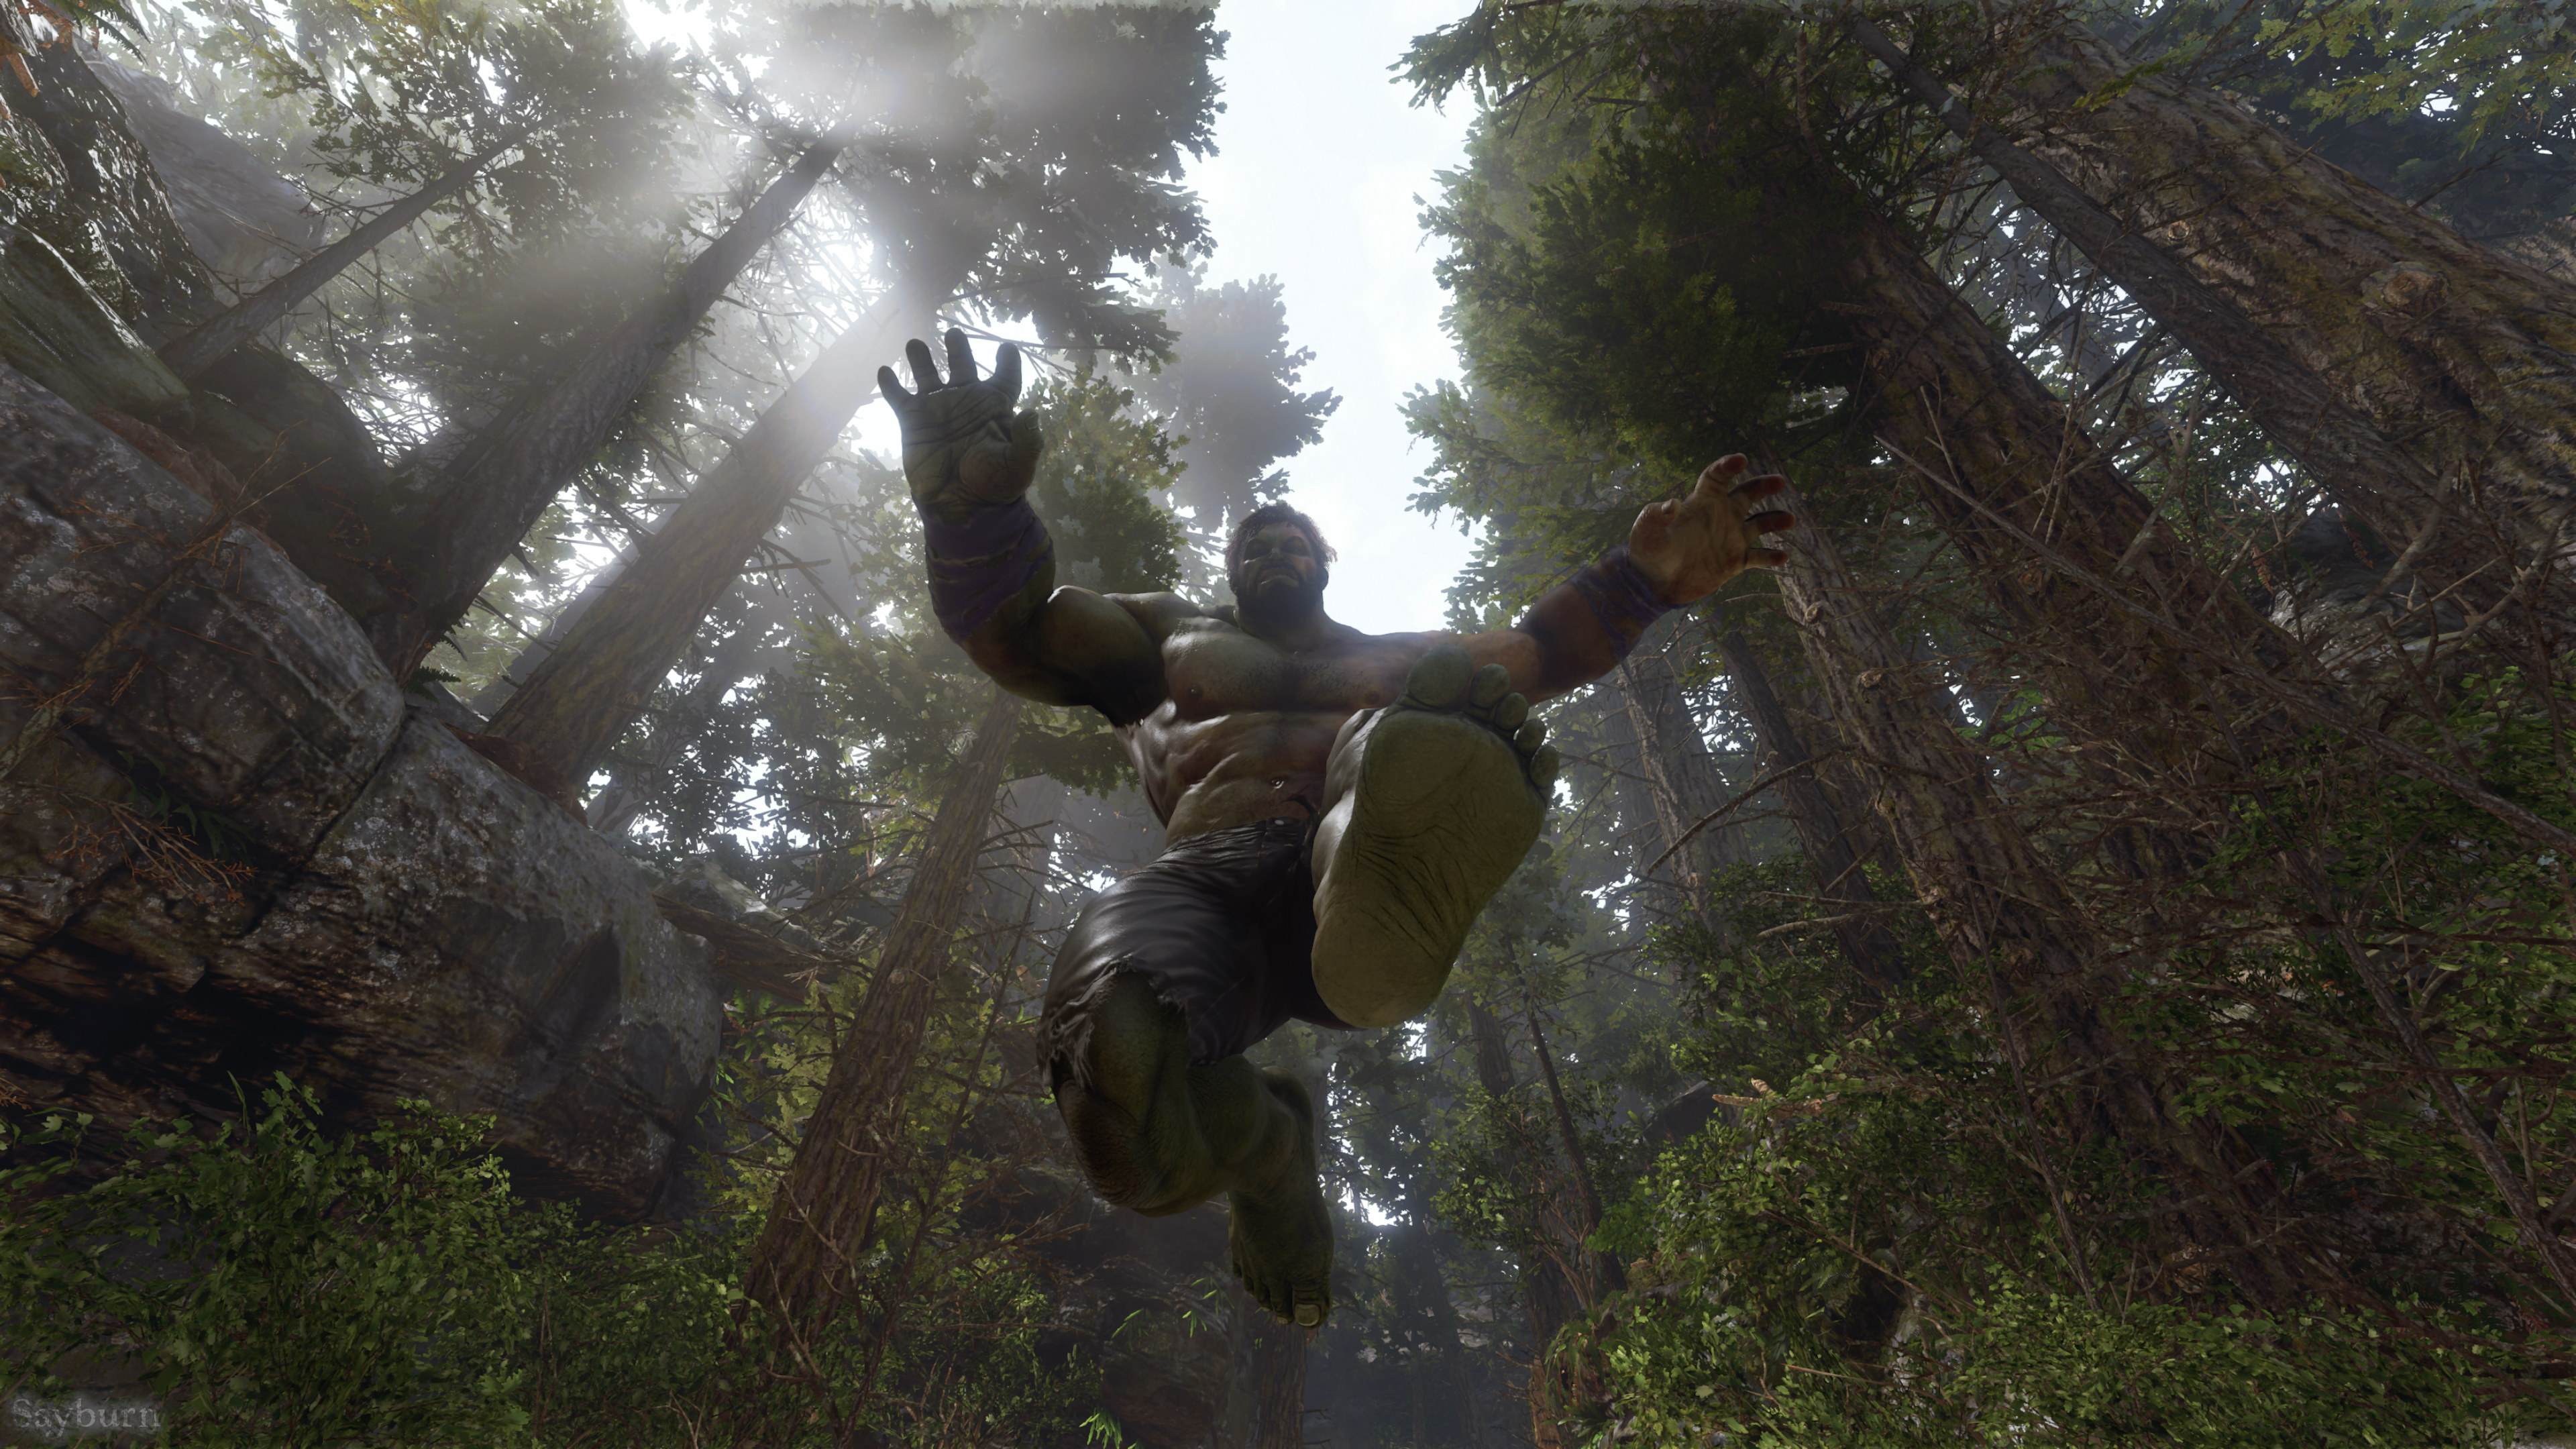 General 3840x2160 superhero jumping worm's eye view forest leaves in-game screen shot Marvel Comics trees Hulk low-angle frontal view